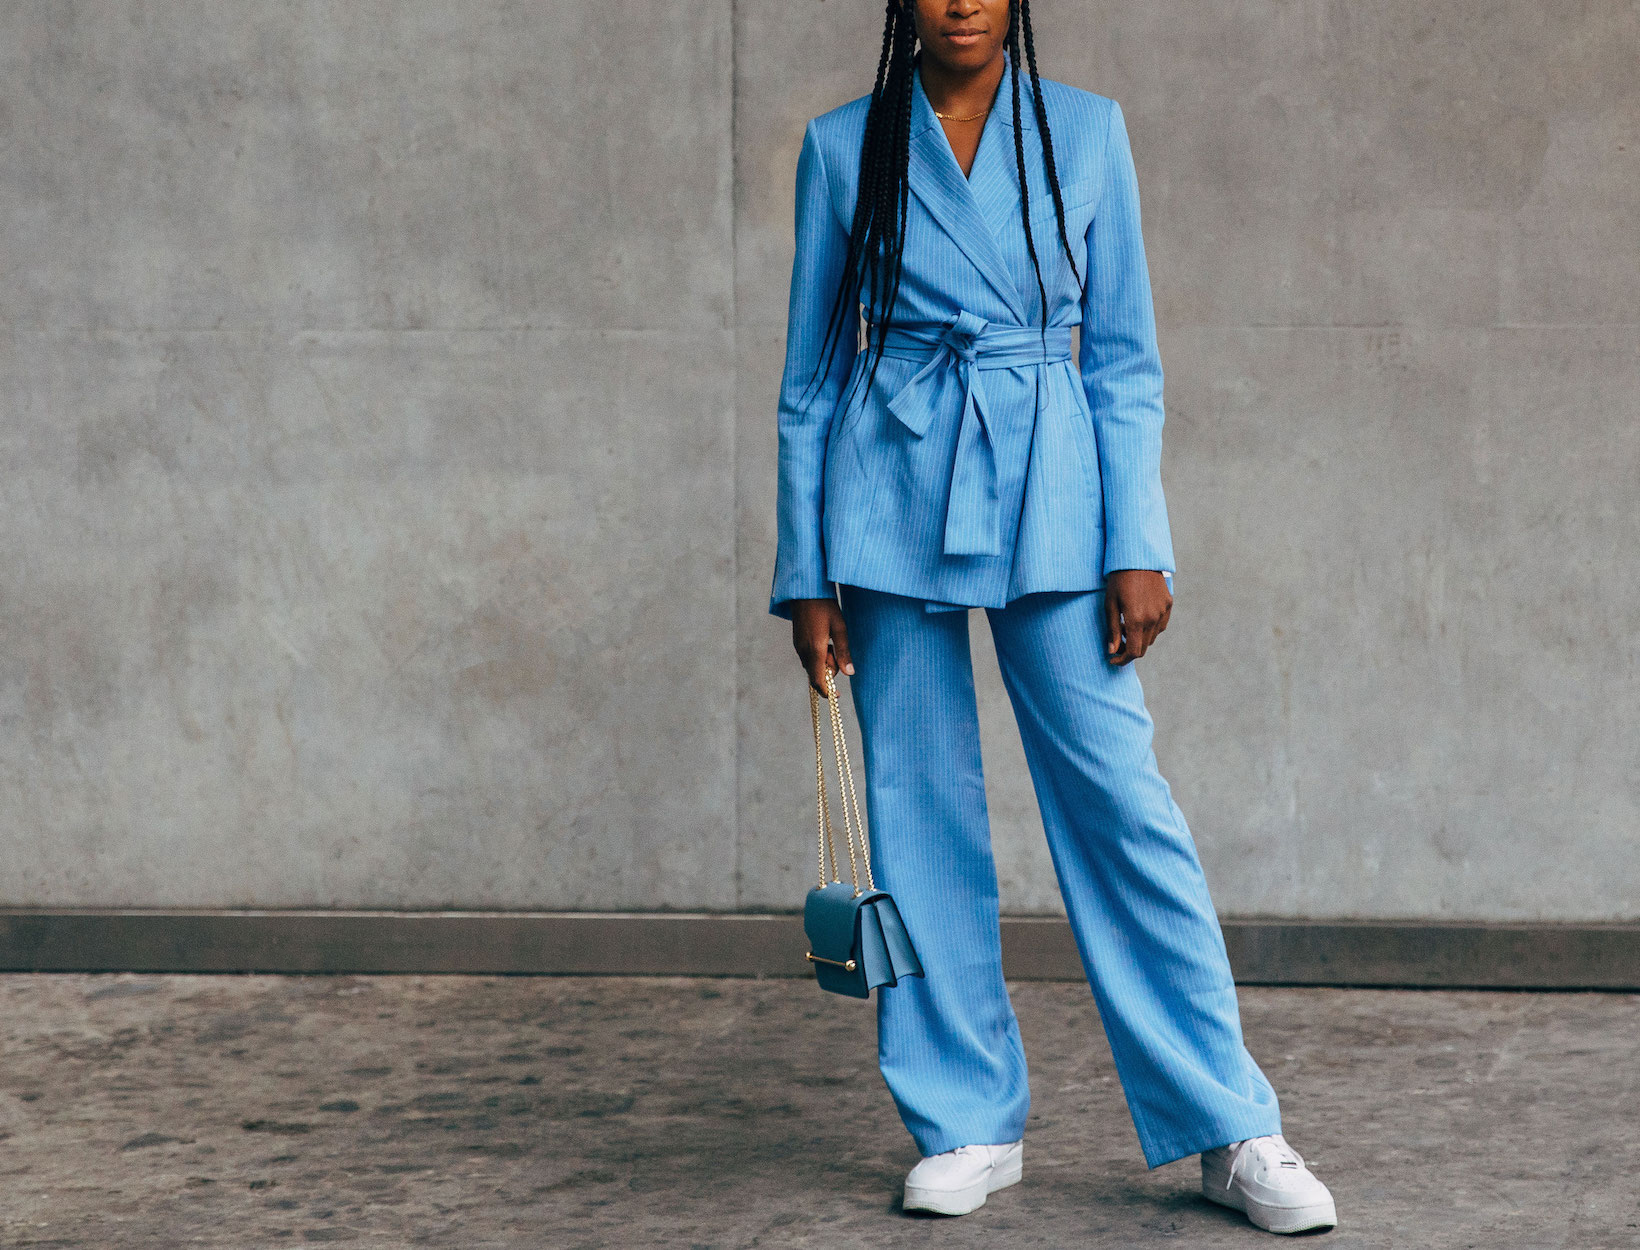 woman in a matching blue blazer and pants